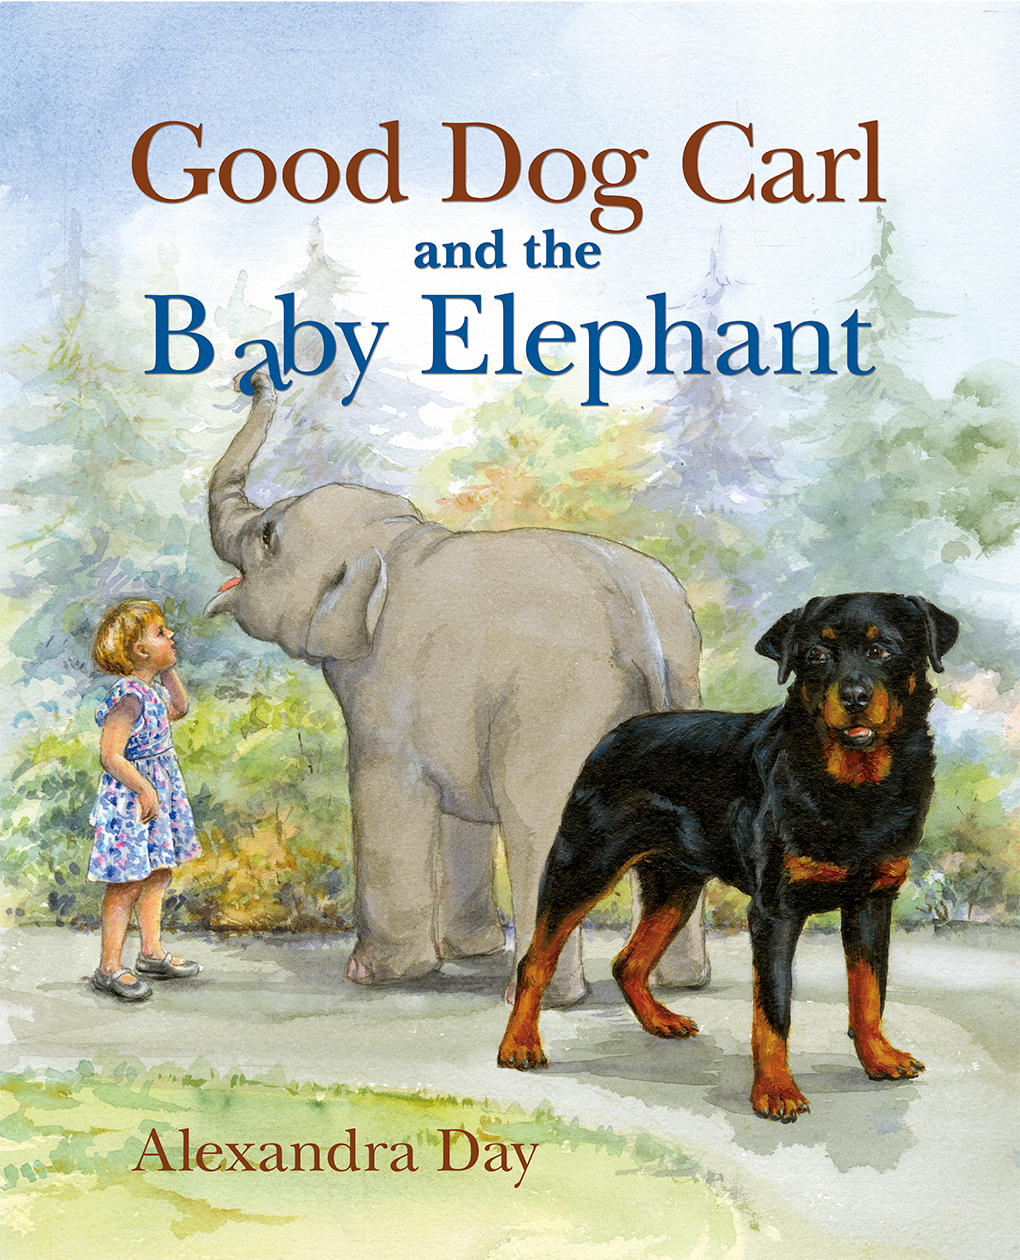 """Good Dog Carl and the Baby Elephant"" cover by Alexandra Day"